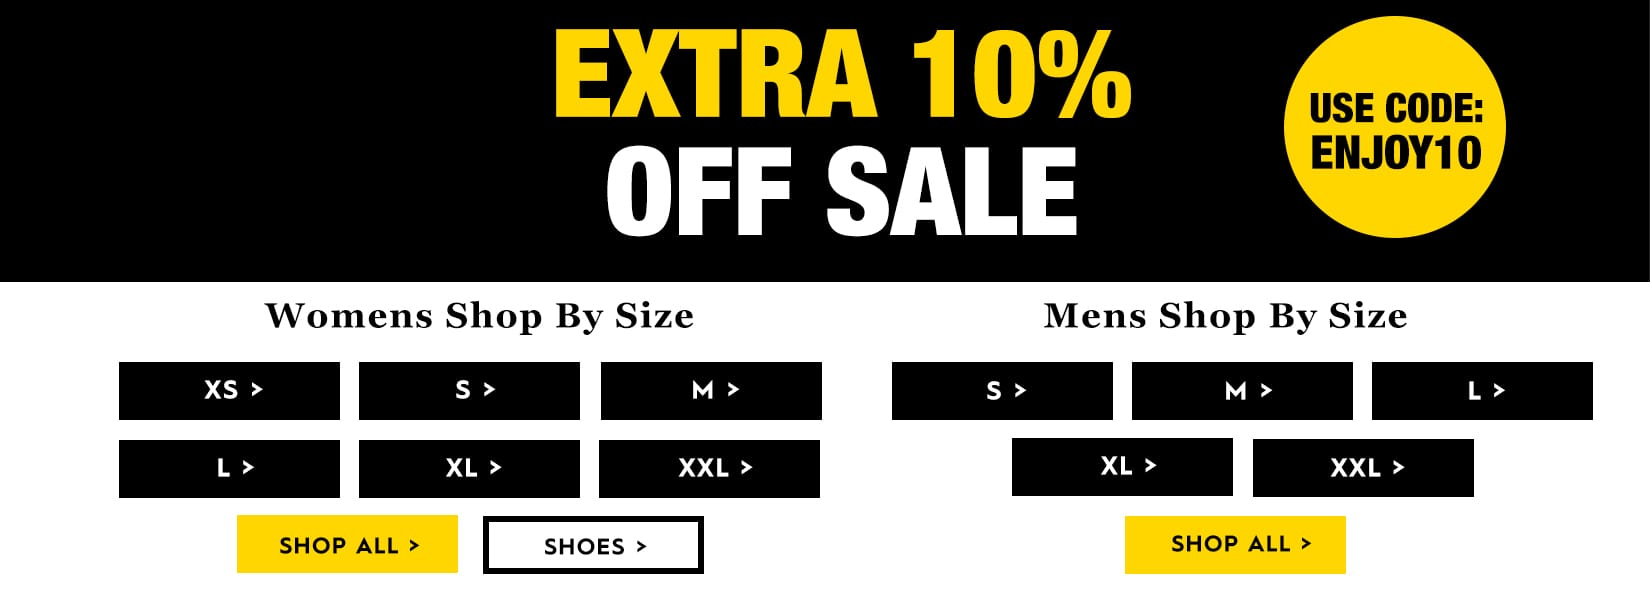 Sale extra 10% off